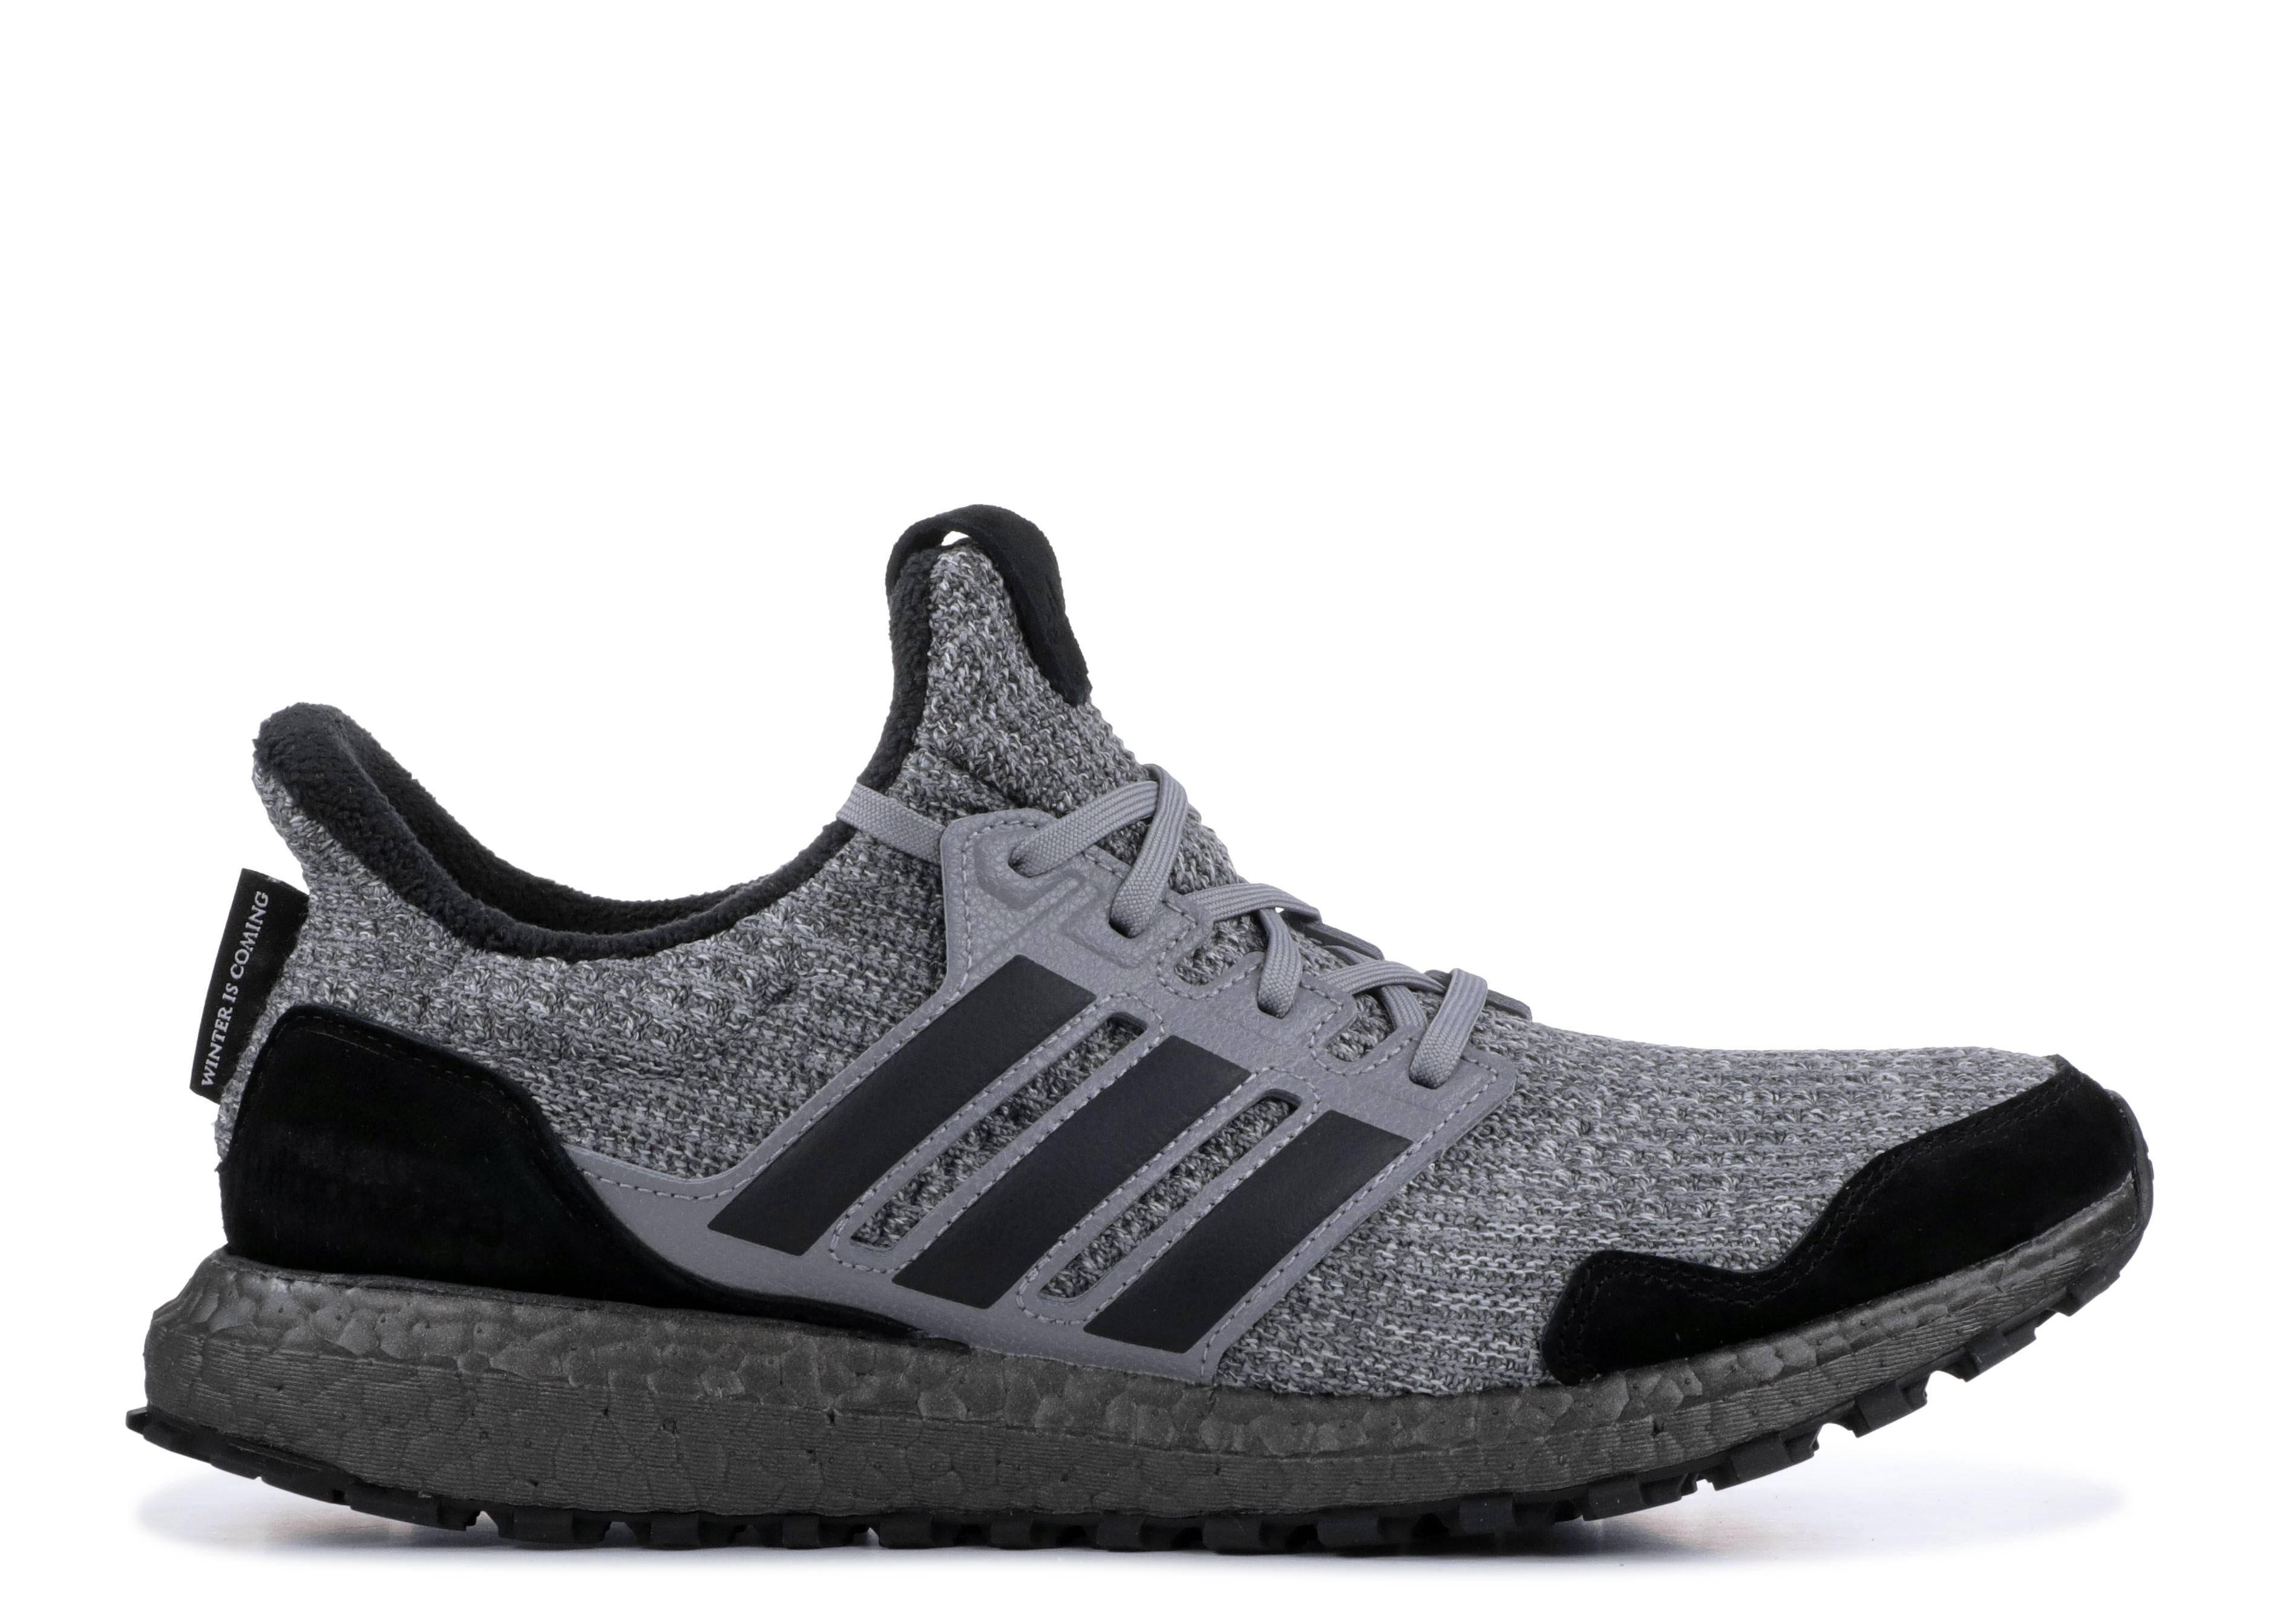 Adidas Ultra Boost 4.0 GOT Game of Thrones Night's Watch